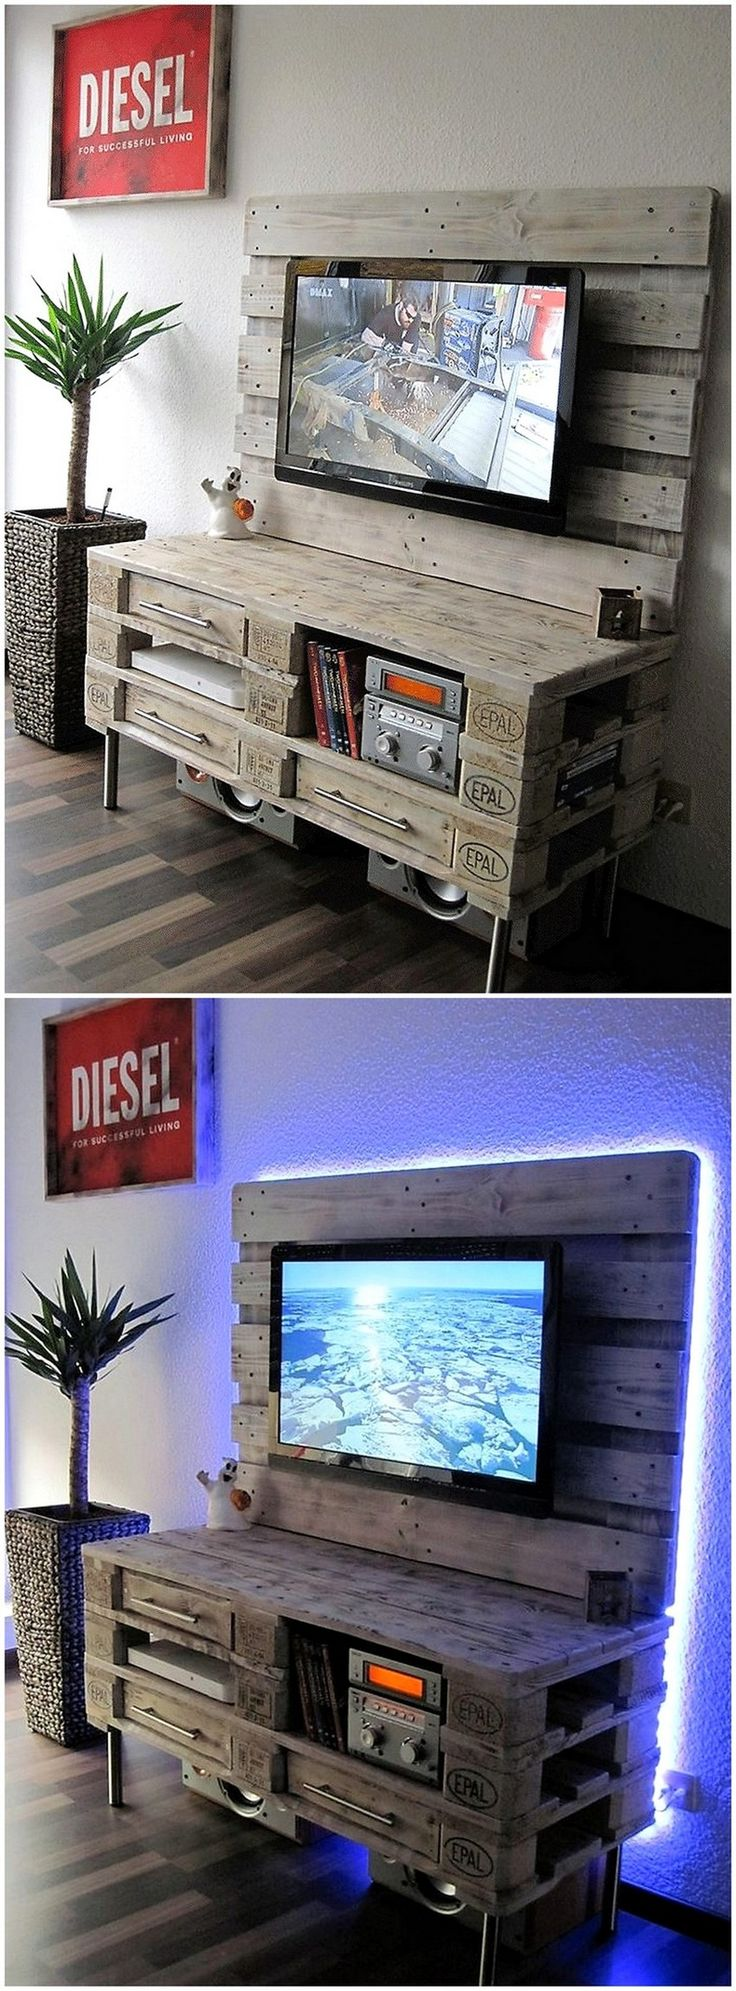 Here is this amazing rustic TV shelf and multimedia cabinet for TV lounge. This is spacious yet covering lesser area in your home. The wooden pallet board for holding TV screen is attached with the shelves and cabinets for placing DVD players, DVDs and other accessories.